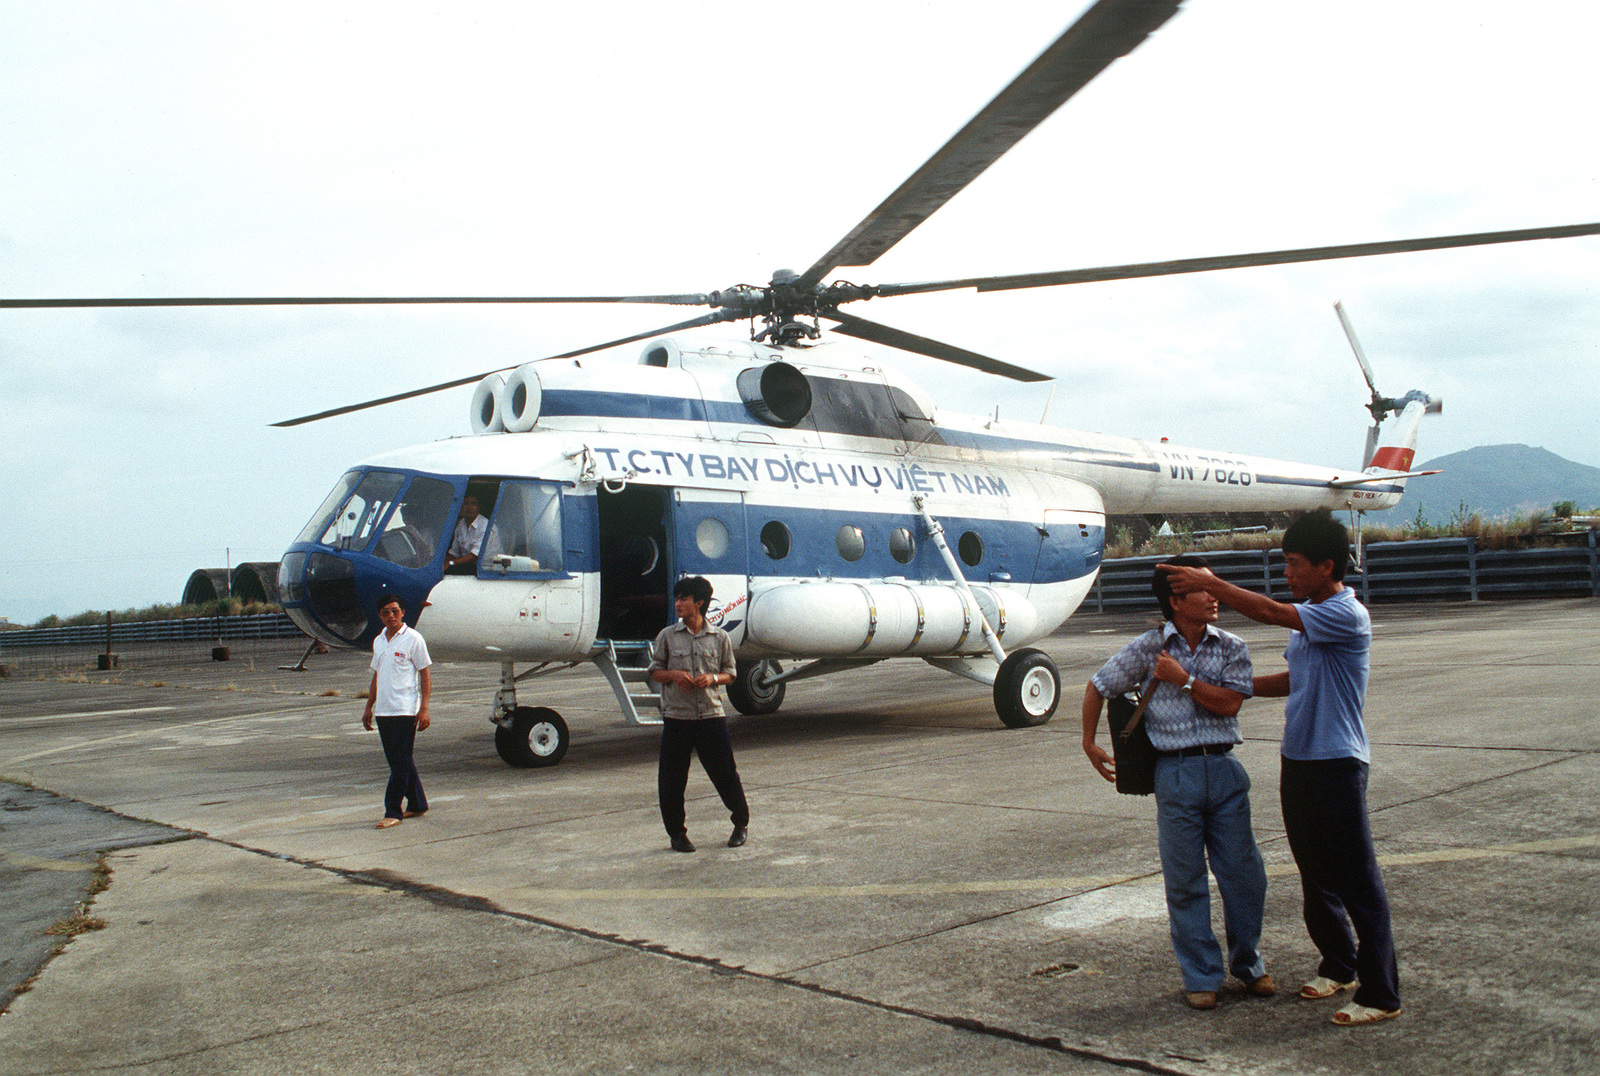 A Soviet-made Mi-8 Hip helicopter stands on the flight line after delivering representatives from the Joint Casualty Recovery Center (JCRC) to the area. JCRC personnel are in the region to work in conjunction with Vietnamese authorities gathering information on Doug Nua Mountain, Quang Binh Province, regarding an American pilot whose A-7 Corsair II aircraft crashed in the region during the Vietnam War.